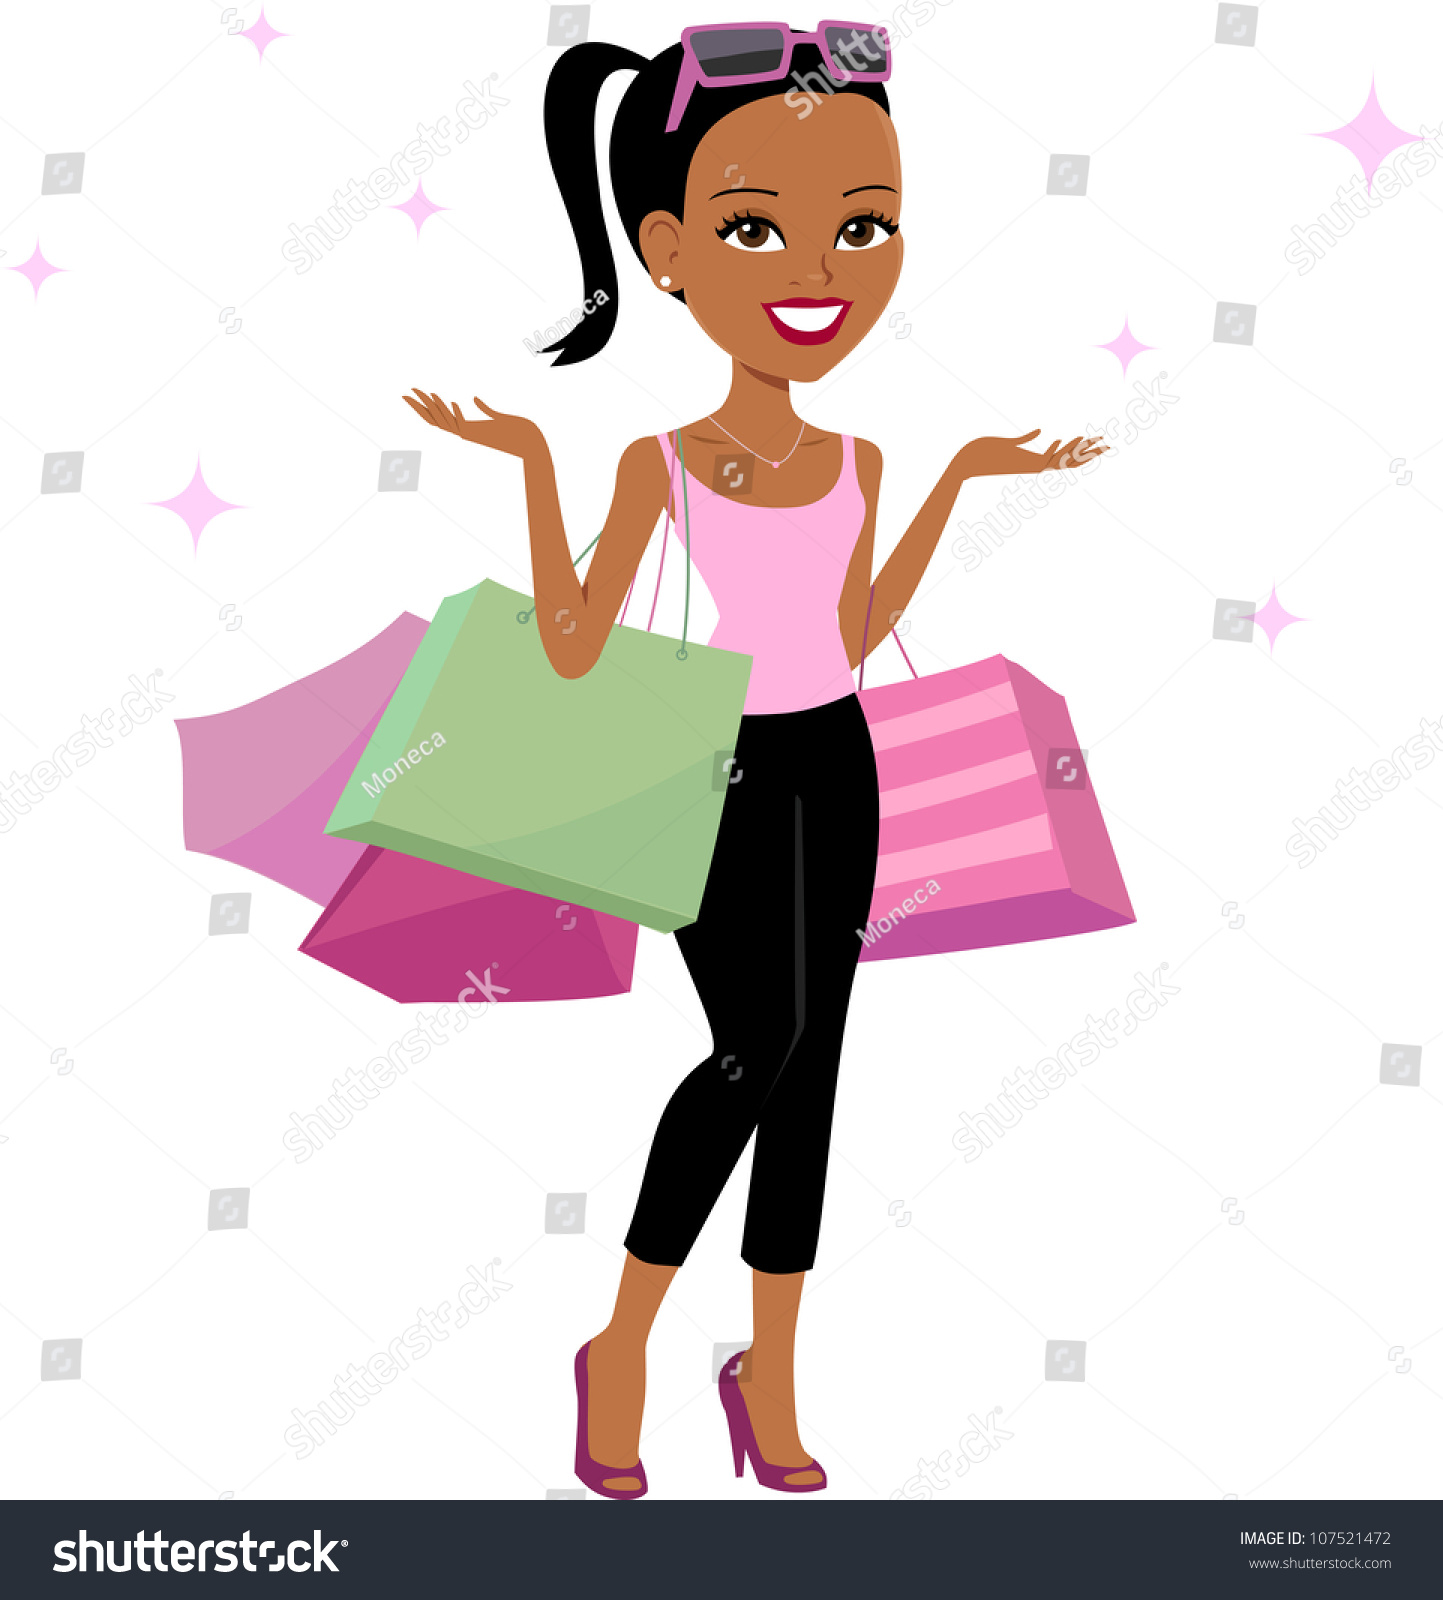 Women Shopping Cartoon Illustration - 107521472 : Shutterstock